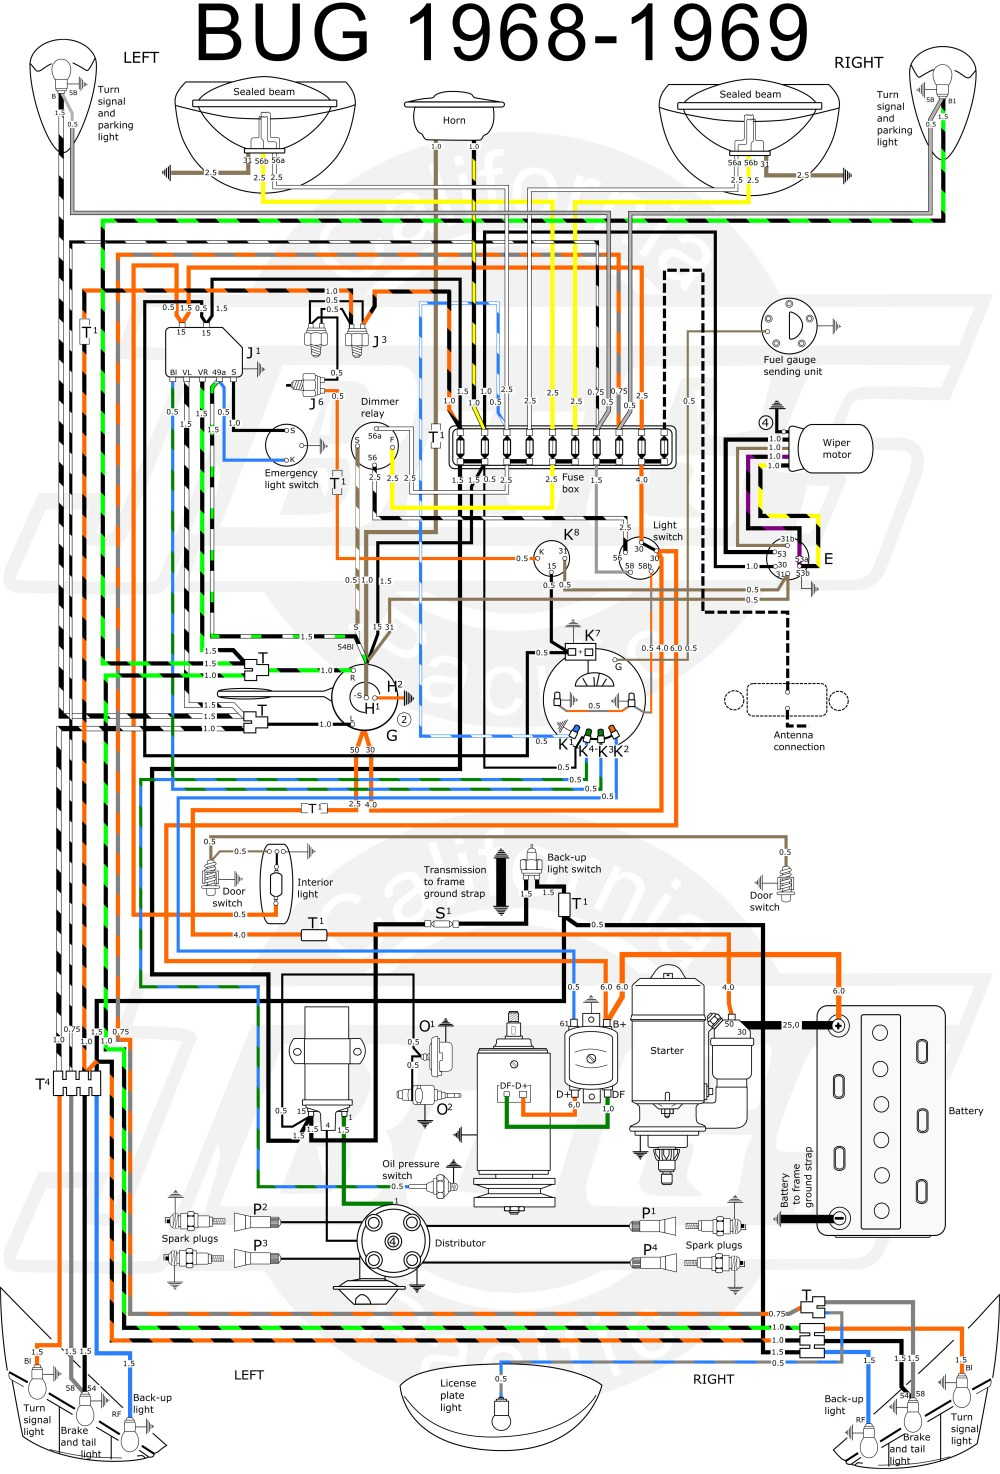 medium resolution of 1996 jetta engine diagram wiring library 1996 jetta engine diagram